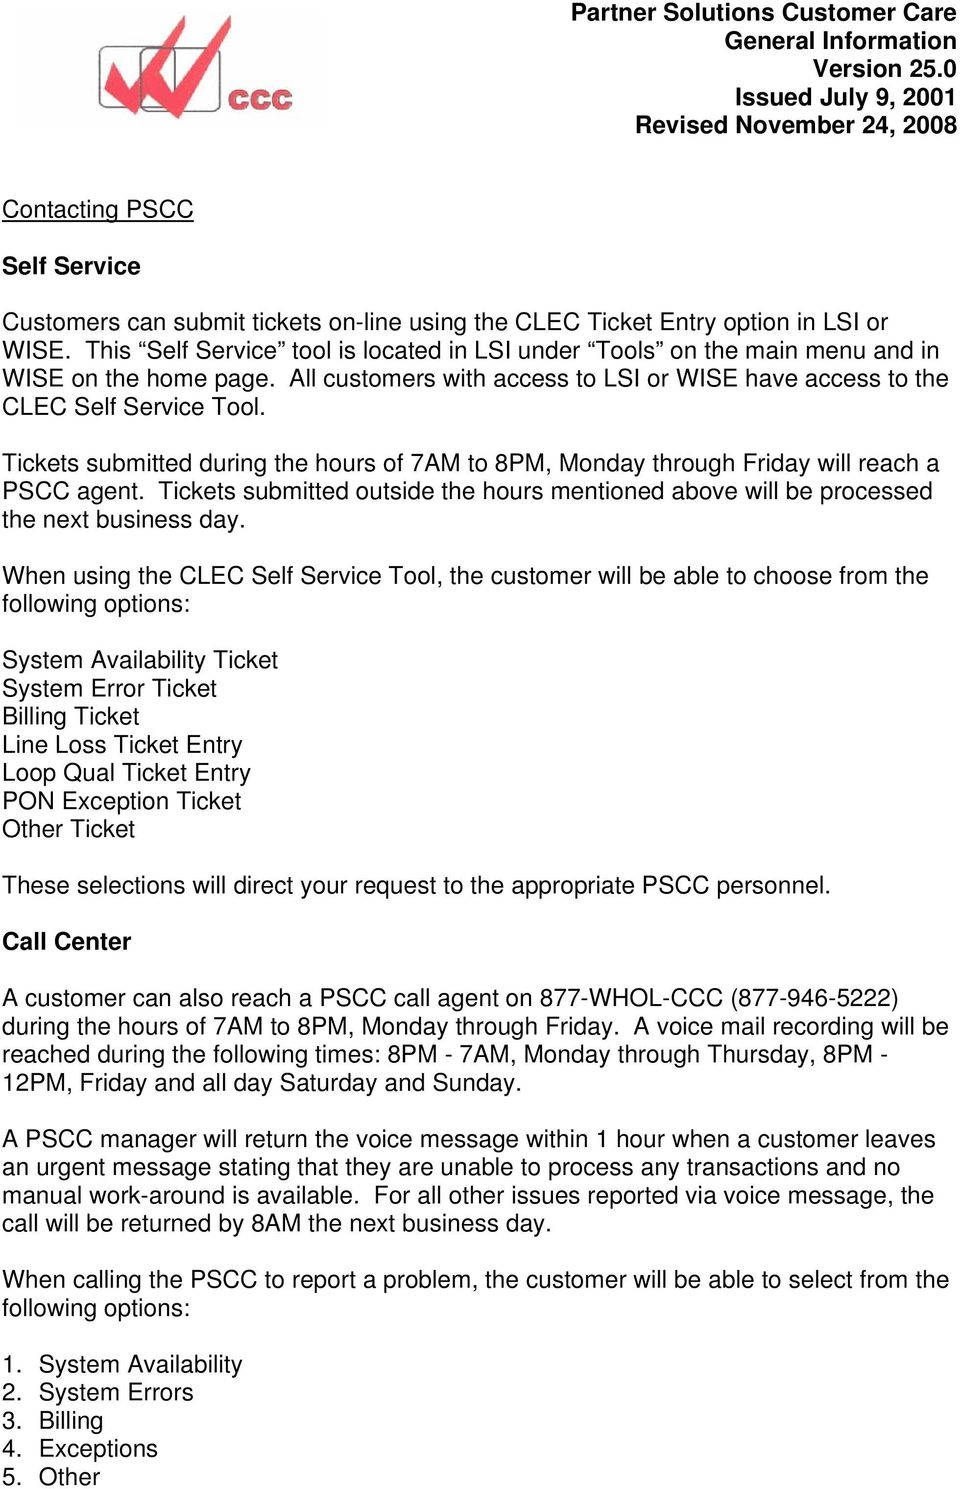 Tickets submitted during the hours of 7AM to 8PM, Monday through Friday will reach a PSCC agent. Tickets submitted outside the hours mentioned above will be processed the next business day.